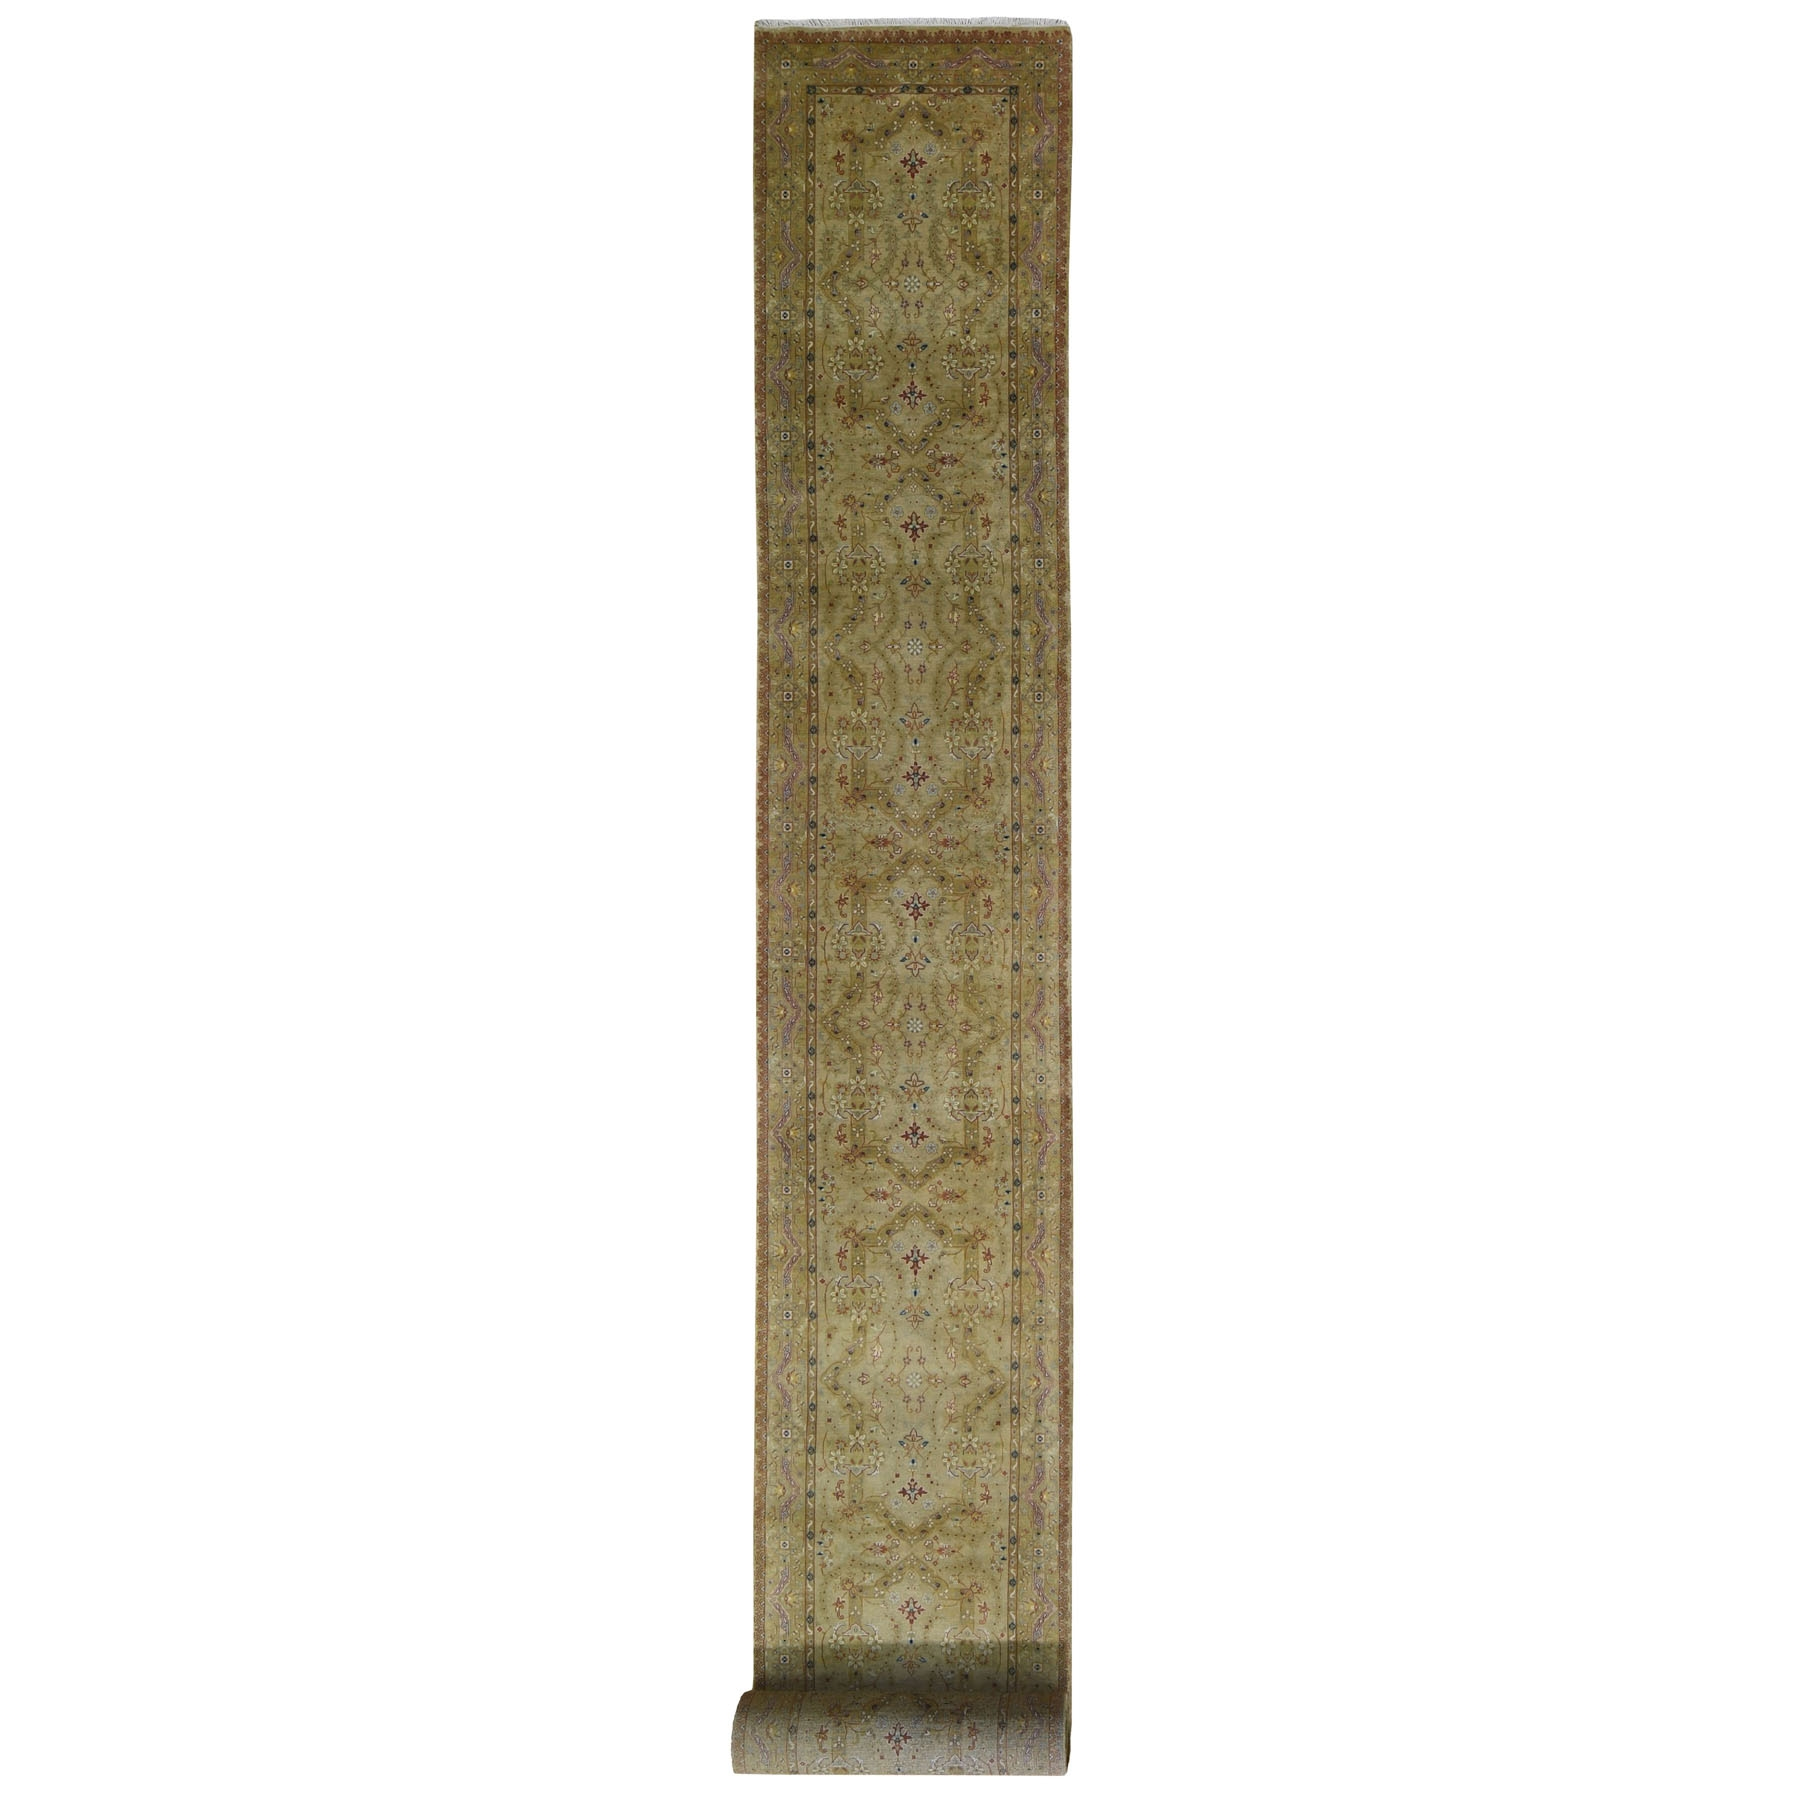 Pirniakan Collection Hand Knotted Green Rug No: 199314